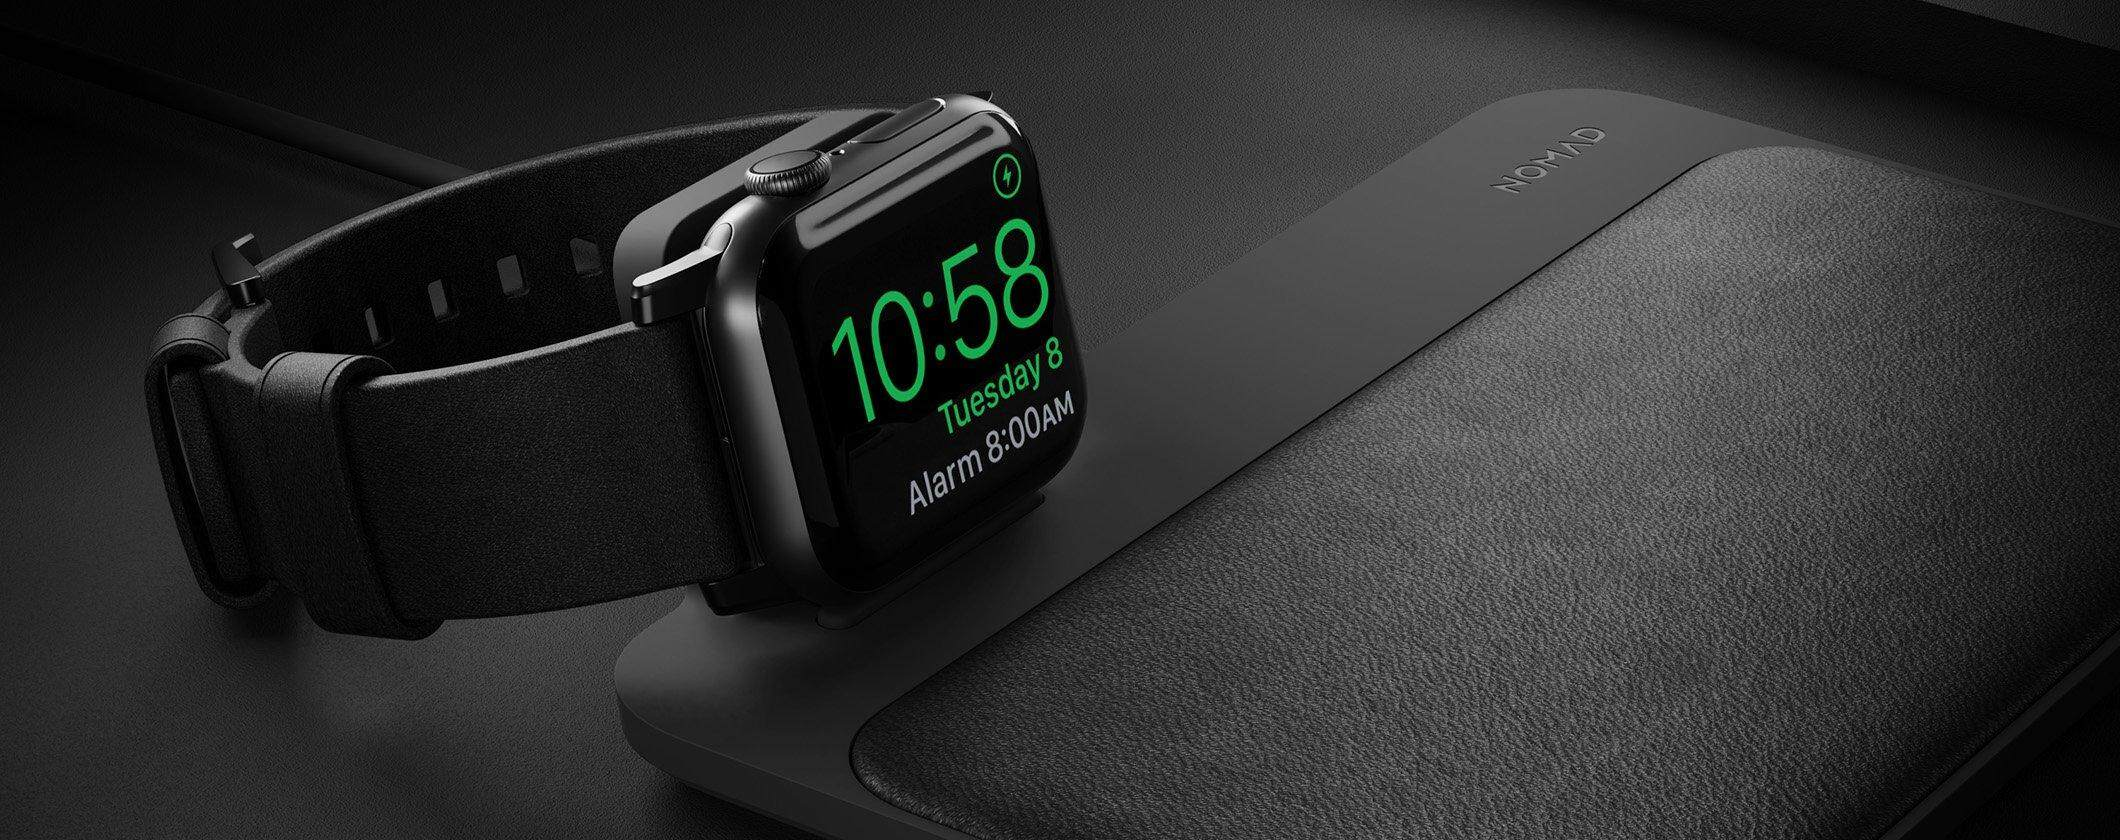 nomad apple watch charger